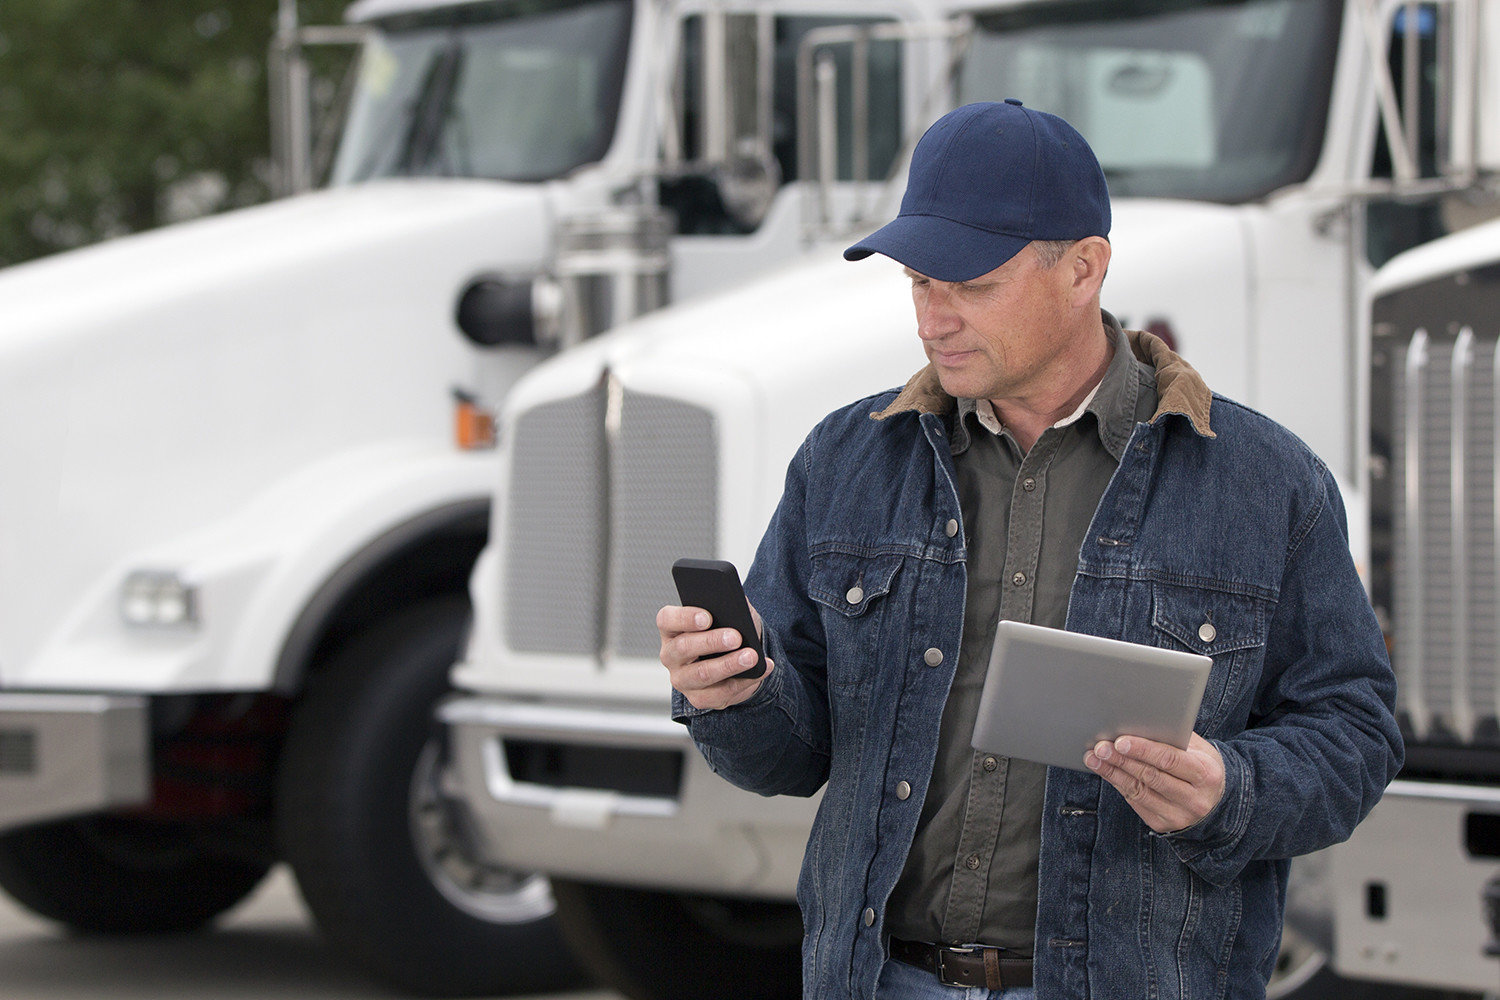 Transportation and logistics Applications - Real-time Tracking Status|Australia CipherLab world leader in AIDC solutions